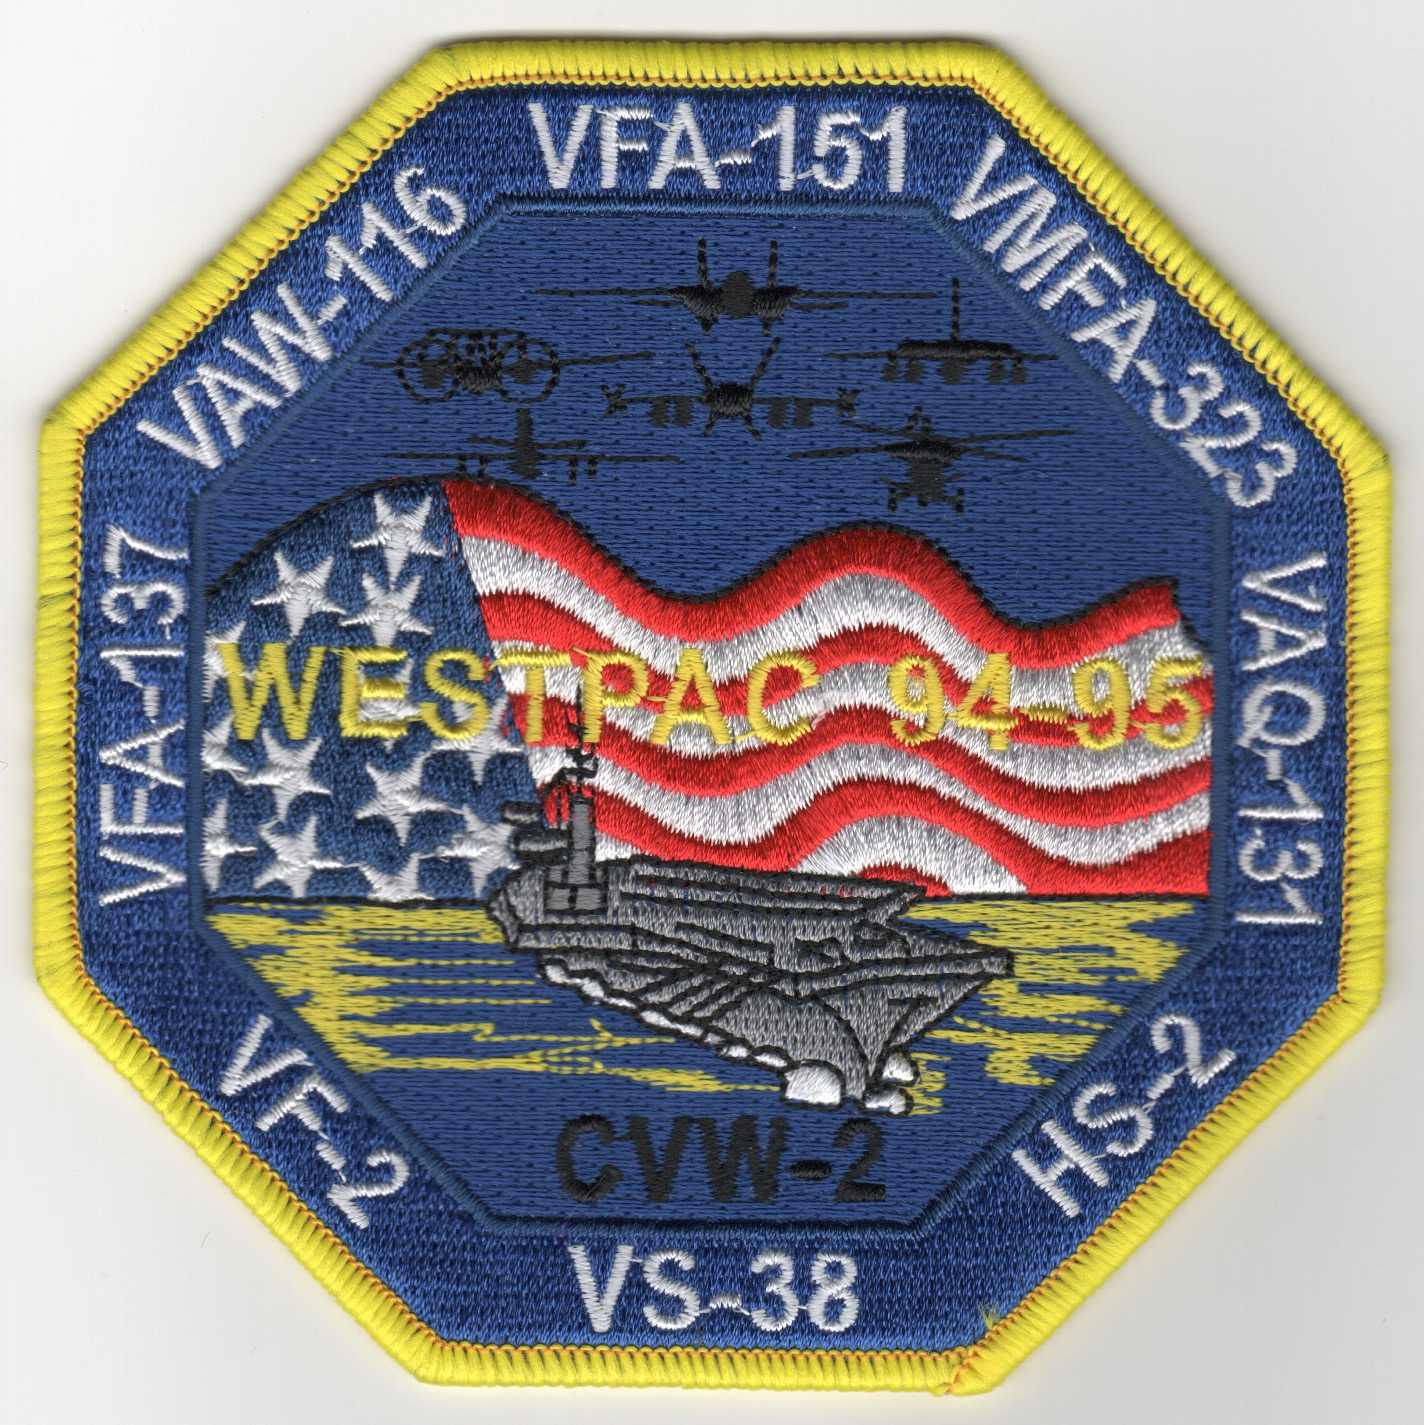 CV-64/CVW-2 1995 WestPac (Octagon) Cruise Patch